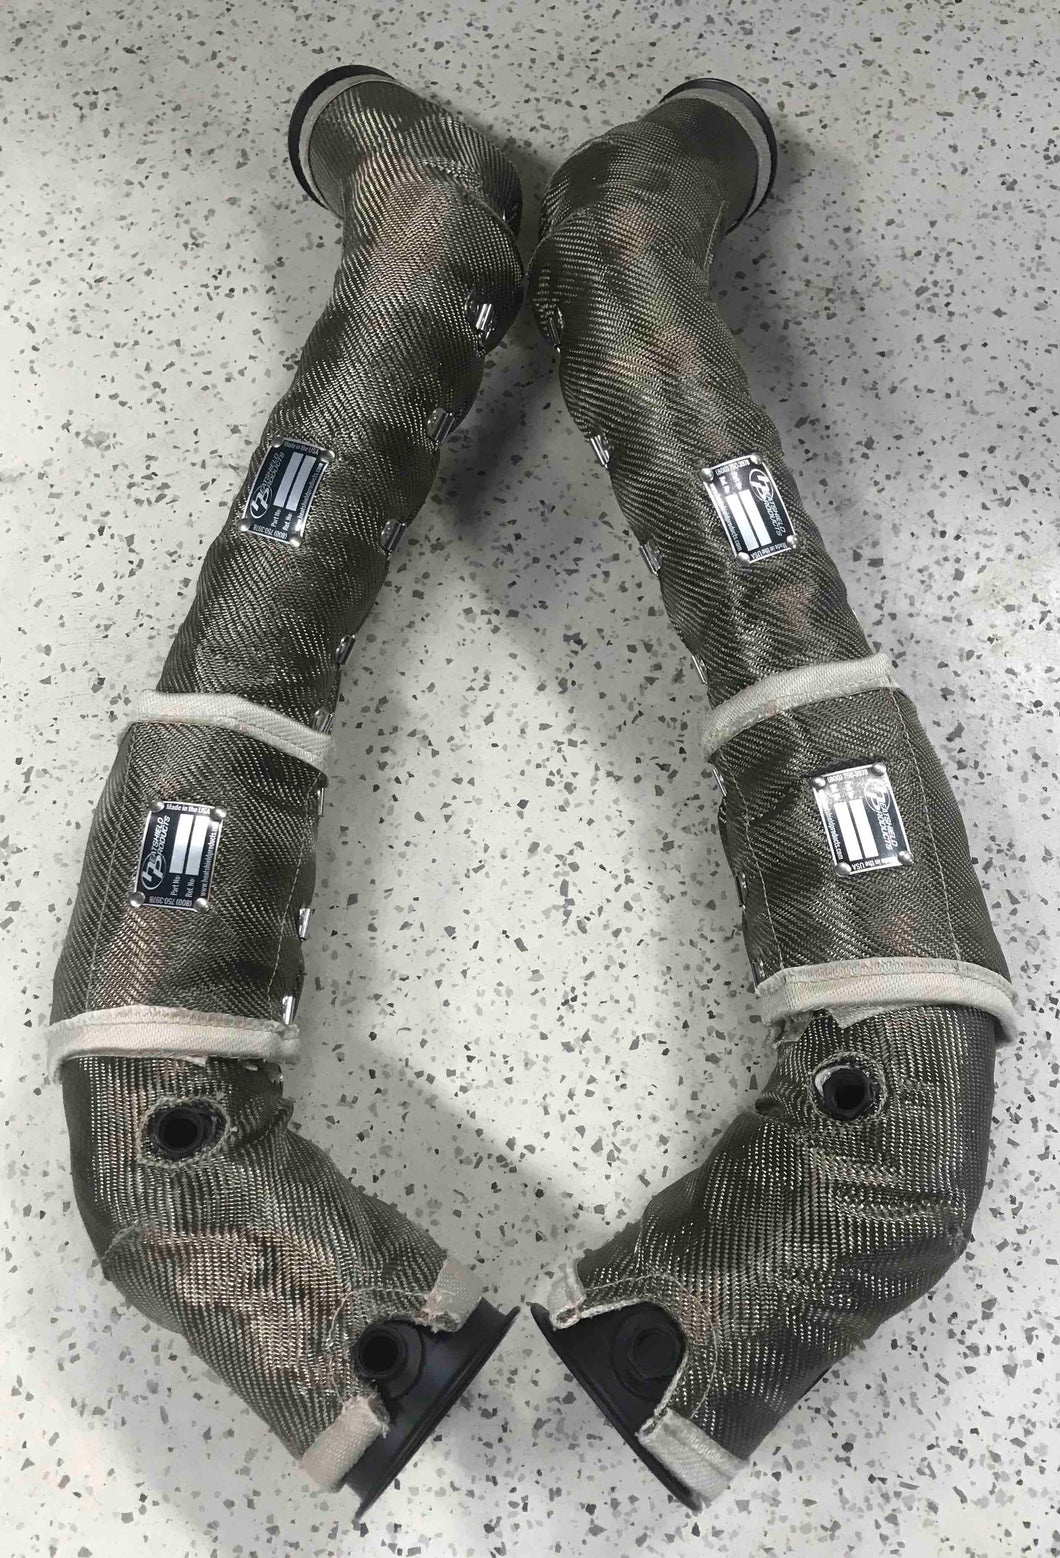 McLaren 12C/650S/675LT/570S/570GT Cat-less Downpipes